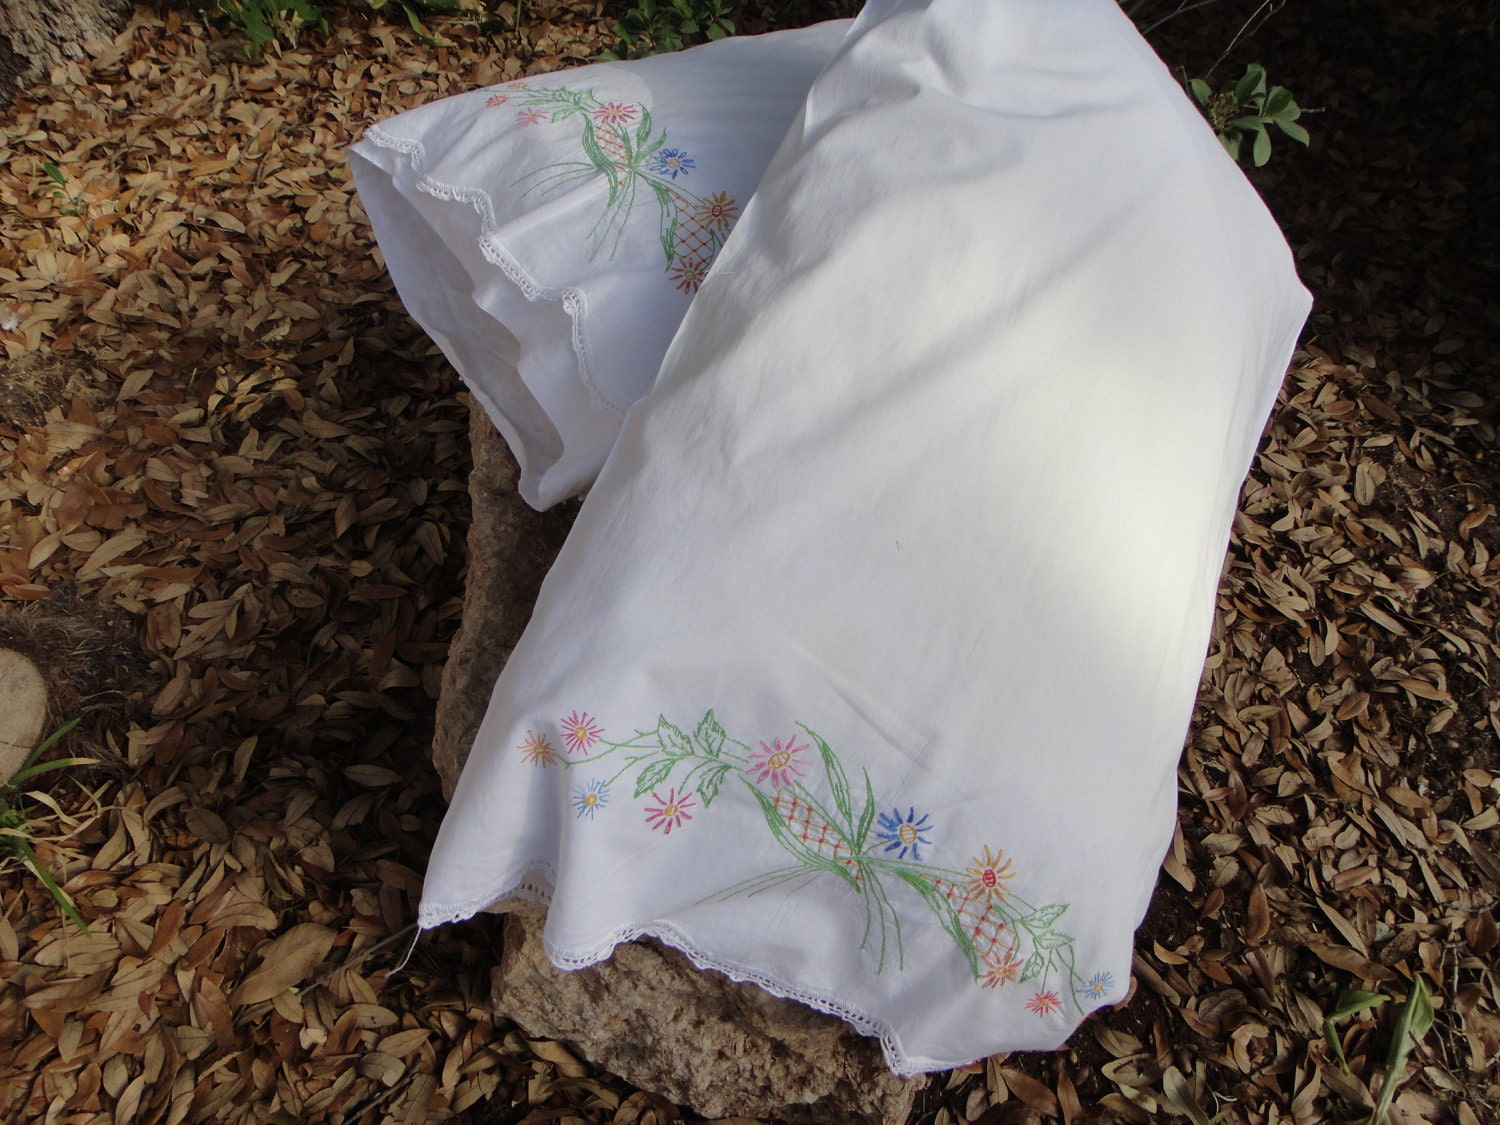 Shabby Chic Woodrose Pillowcases : Shabby Chic Embroidered Pillowcases Vintage Flower